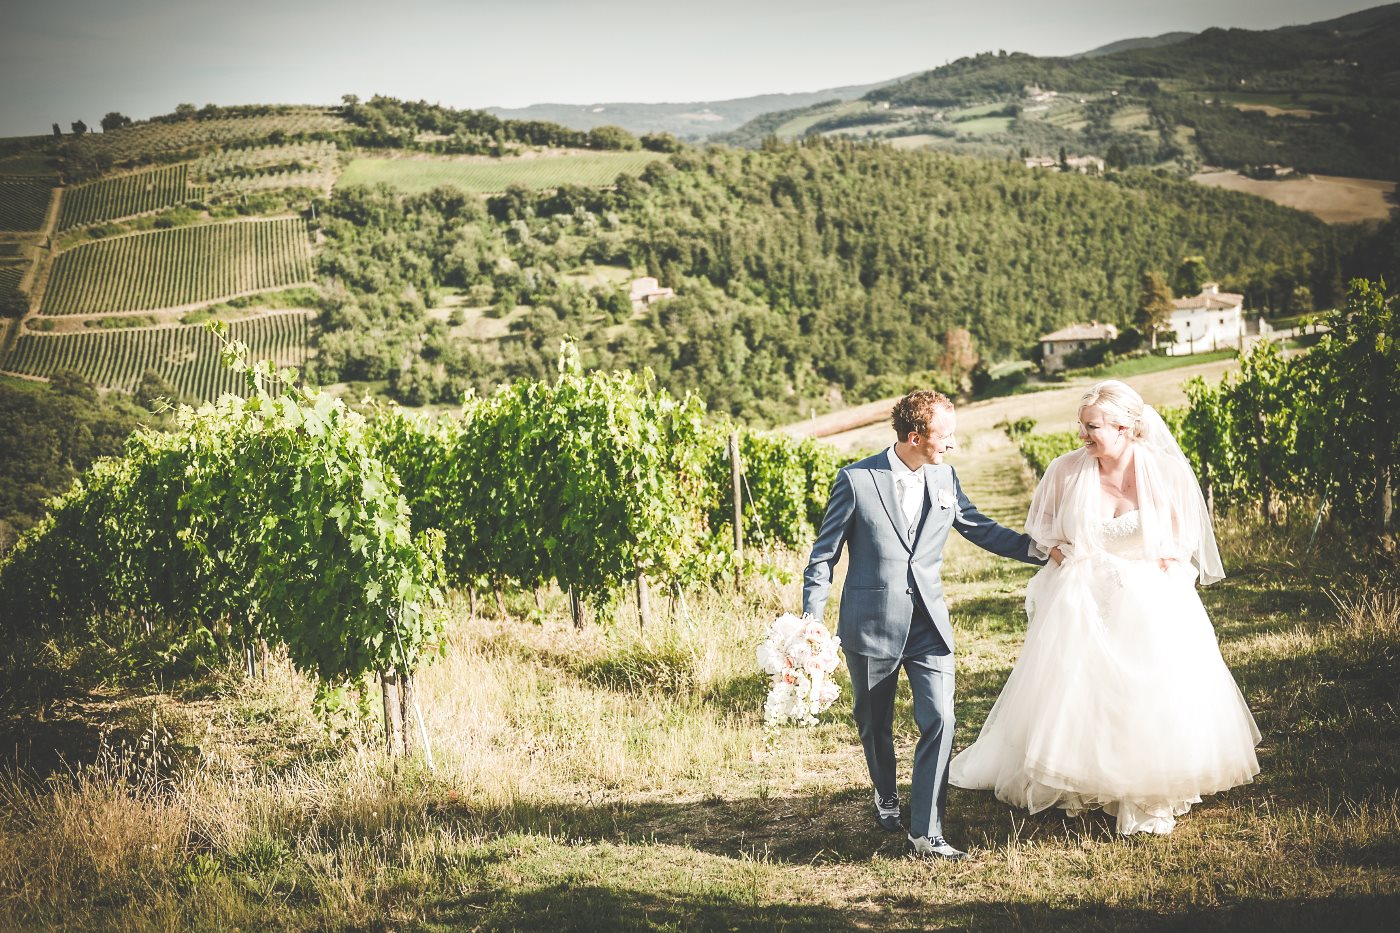 Wedding Photos Fattoria di Rignana | Domenico Costabile